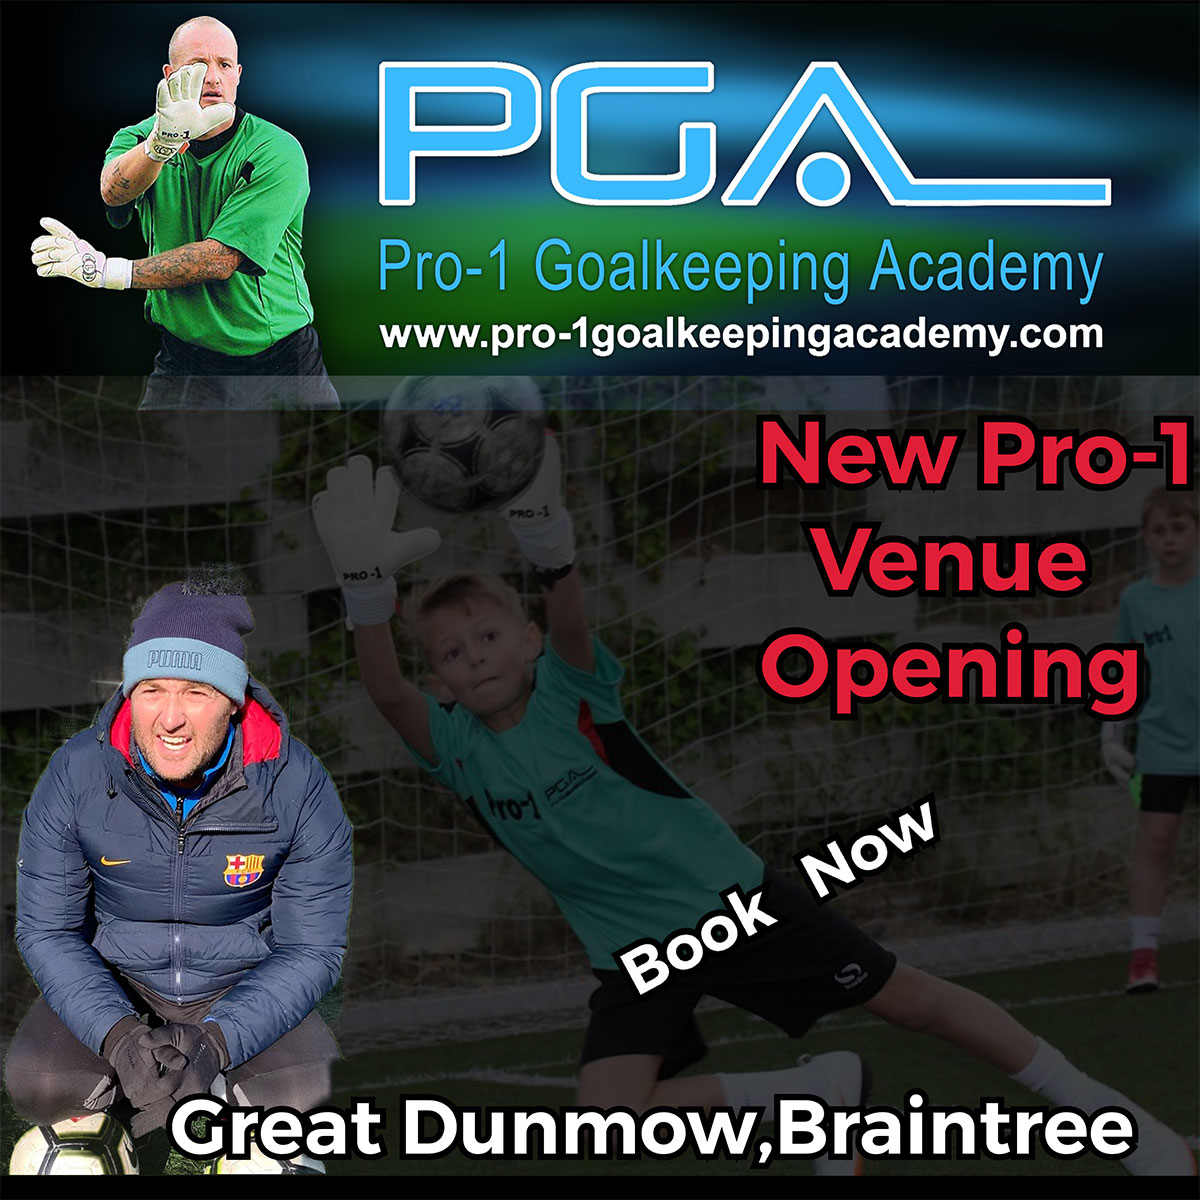 New Pro-1 Venue Opening